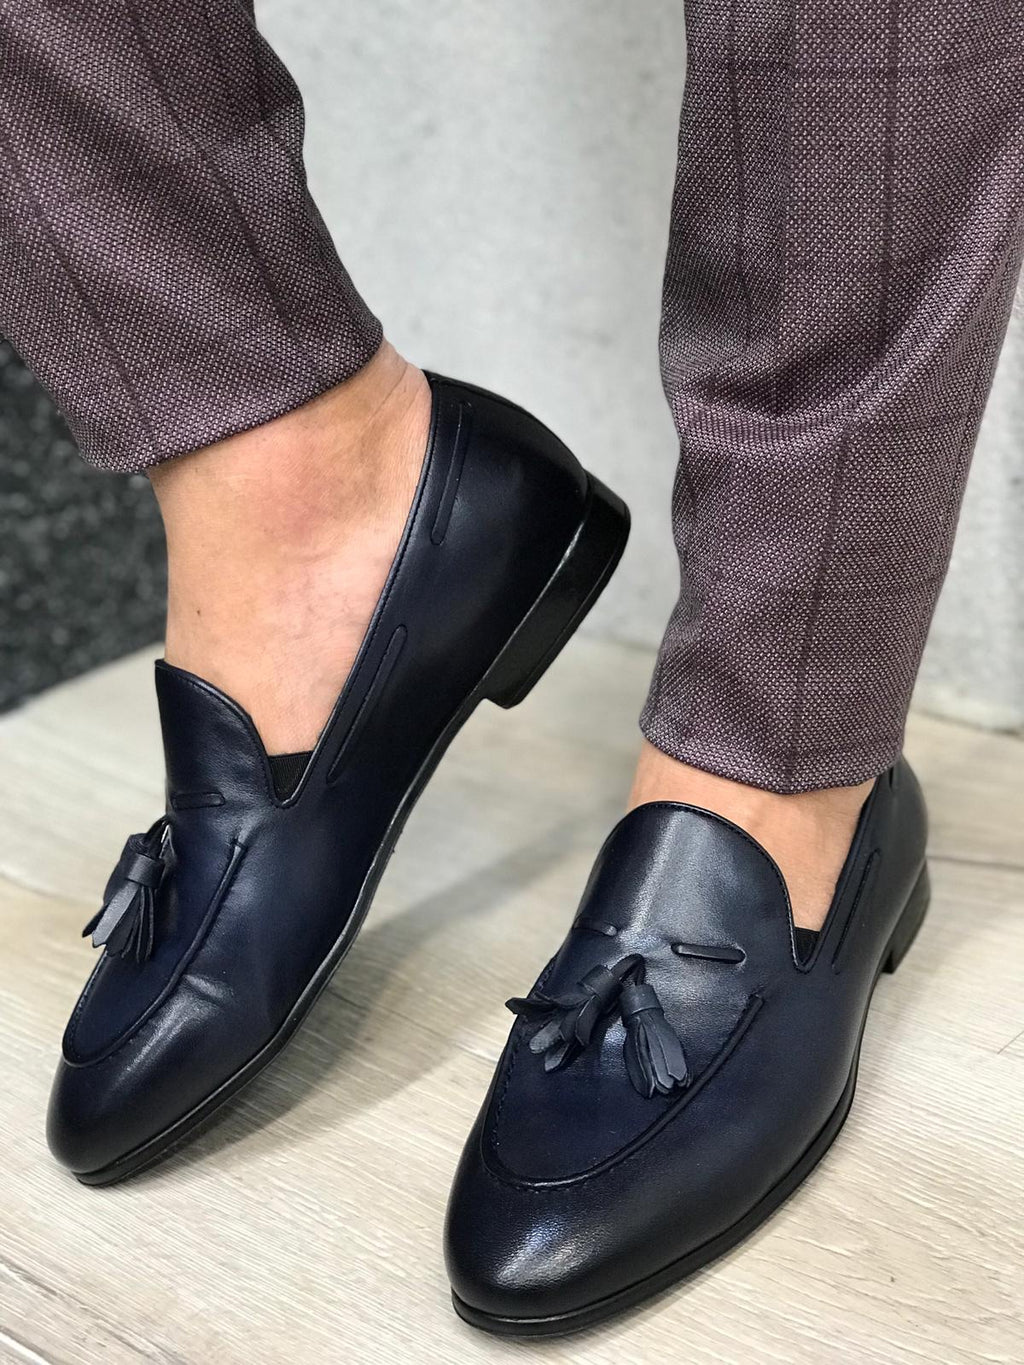 Tassel Leather Navy Loafers